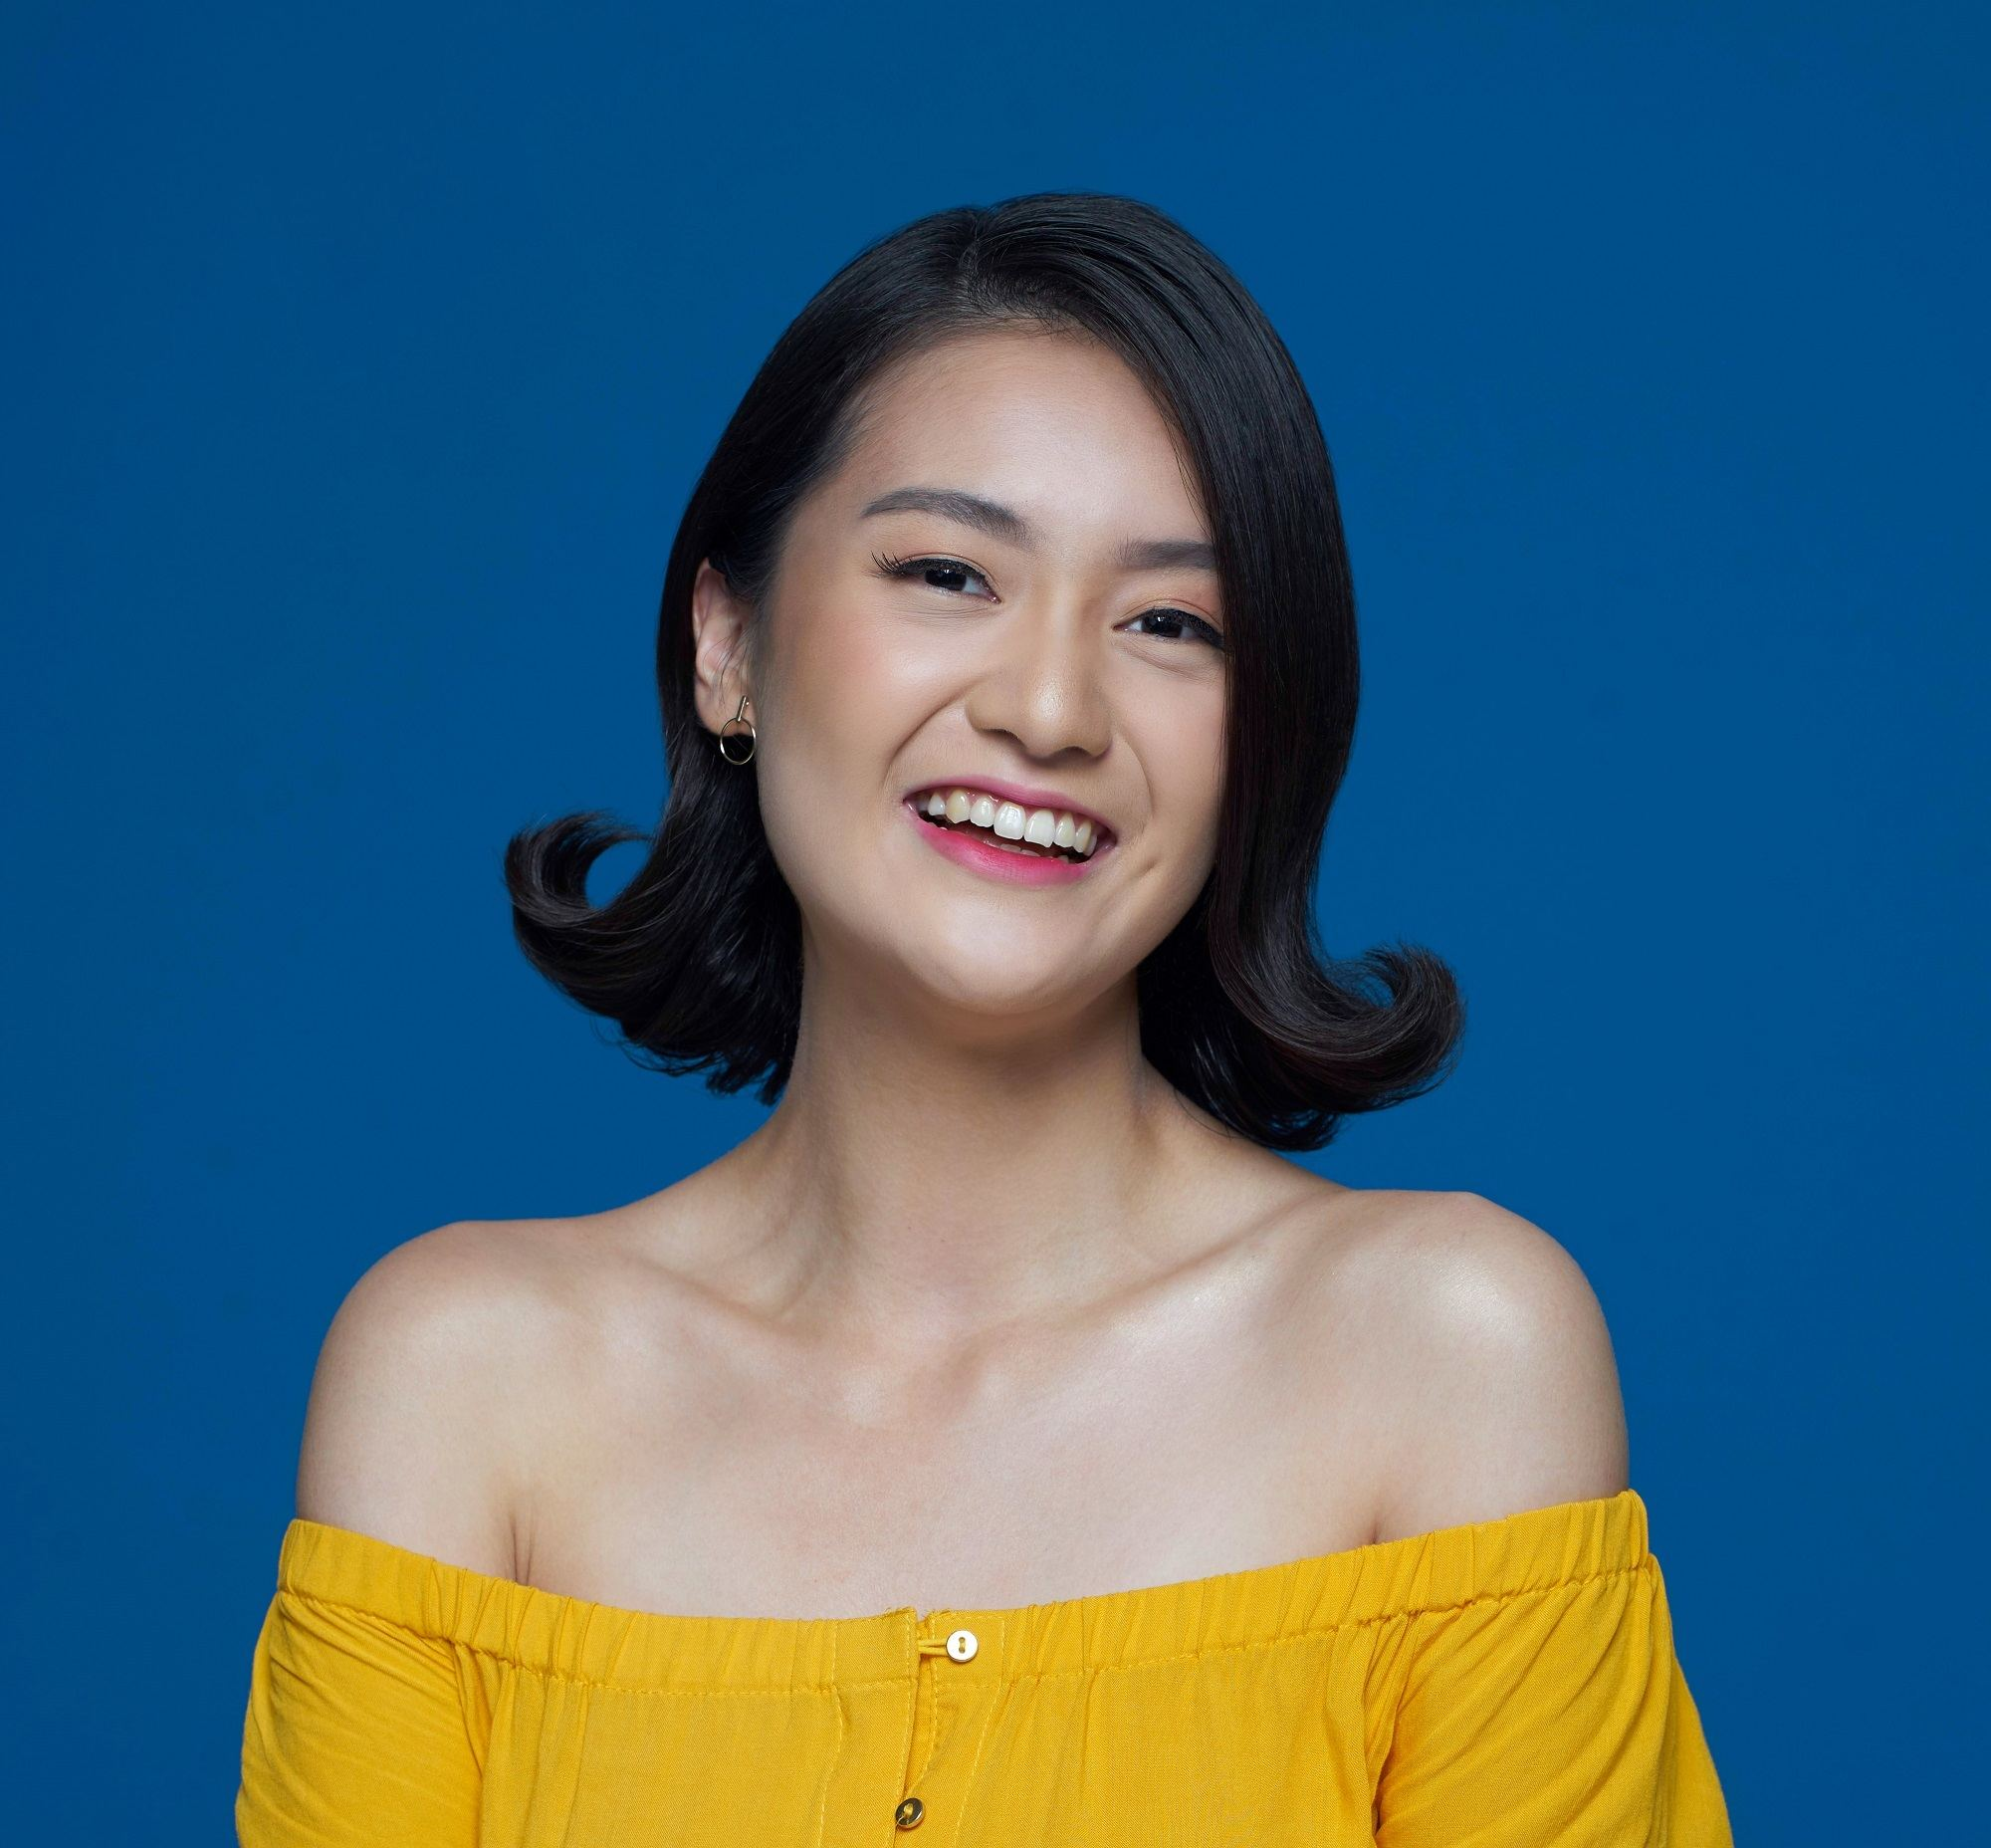 Flipped-out short bob: Closeup shot of an Asian woman with short black hair wearing a yellow dress against a blue background